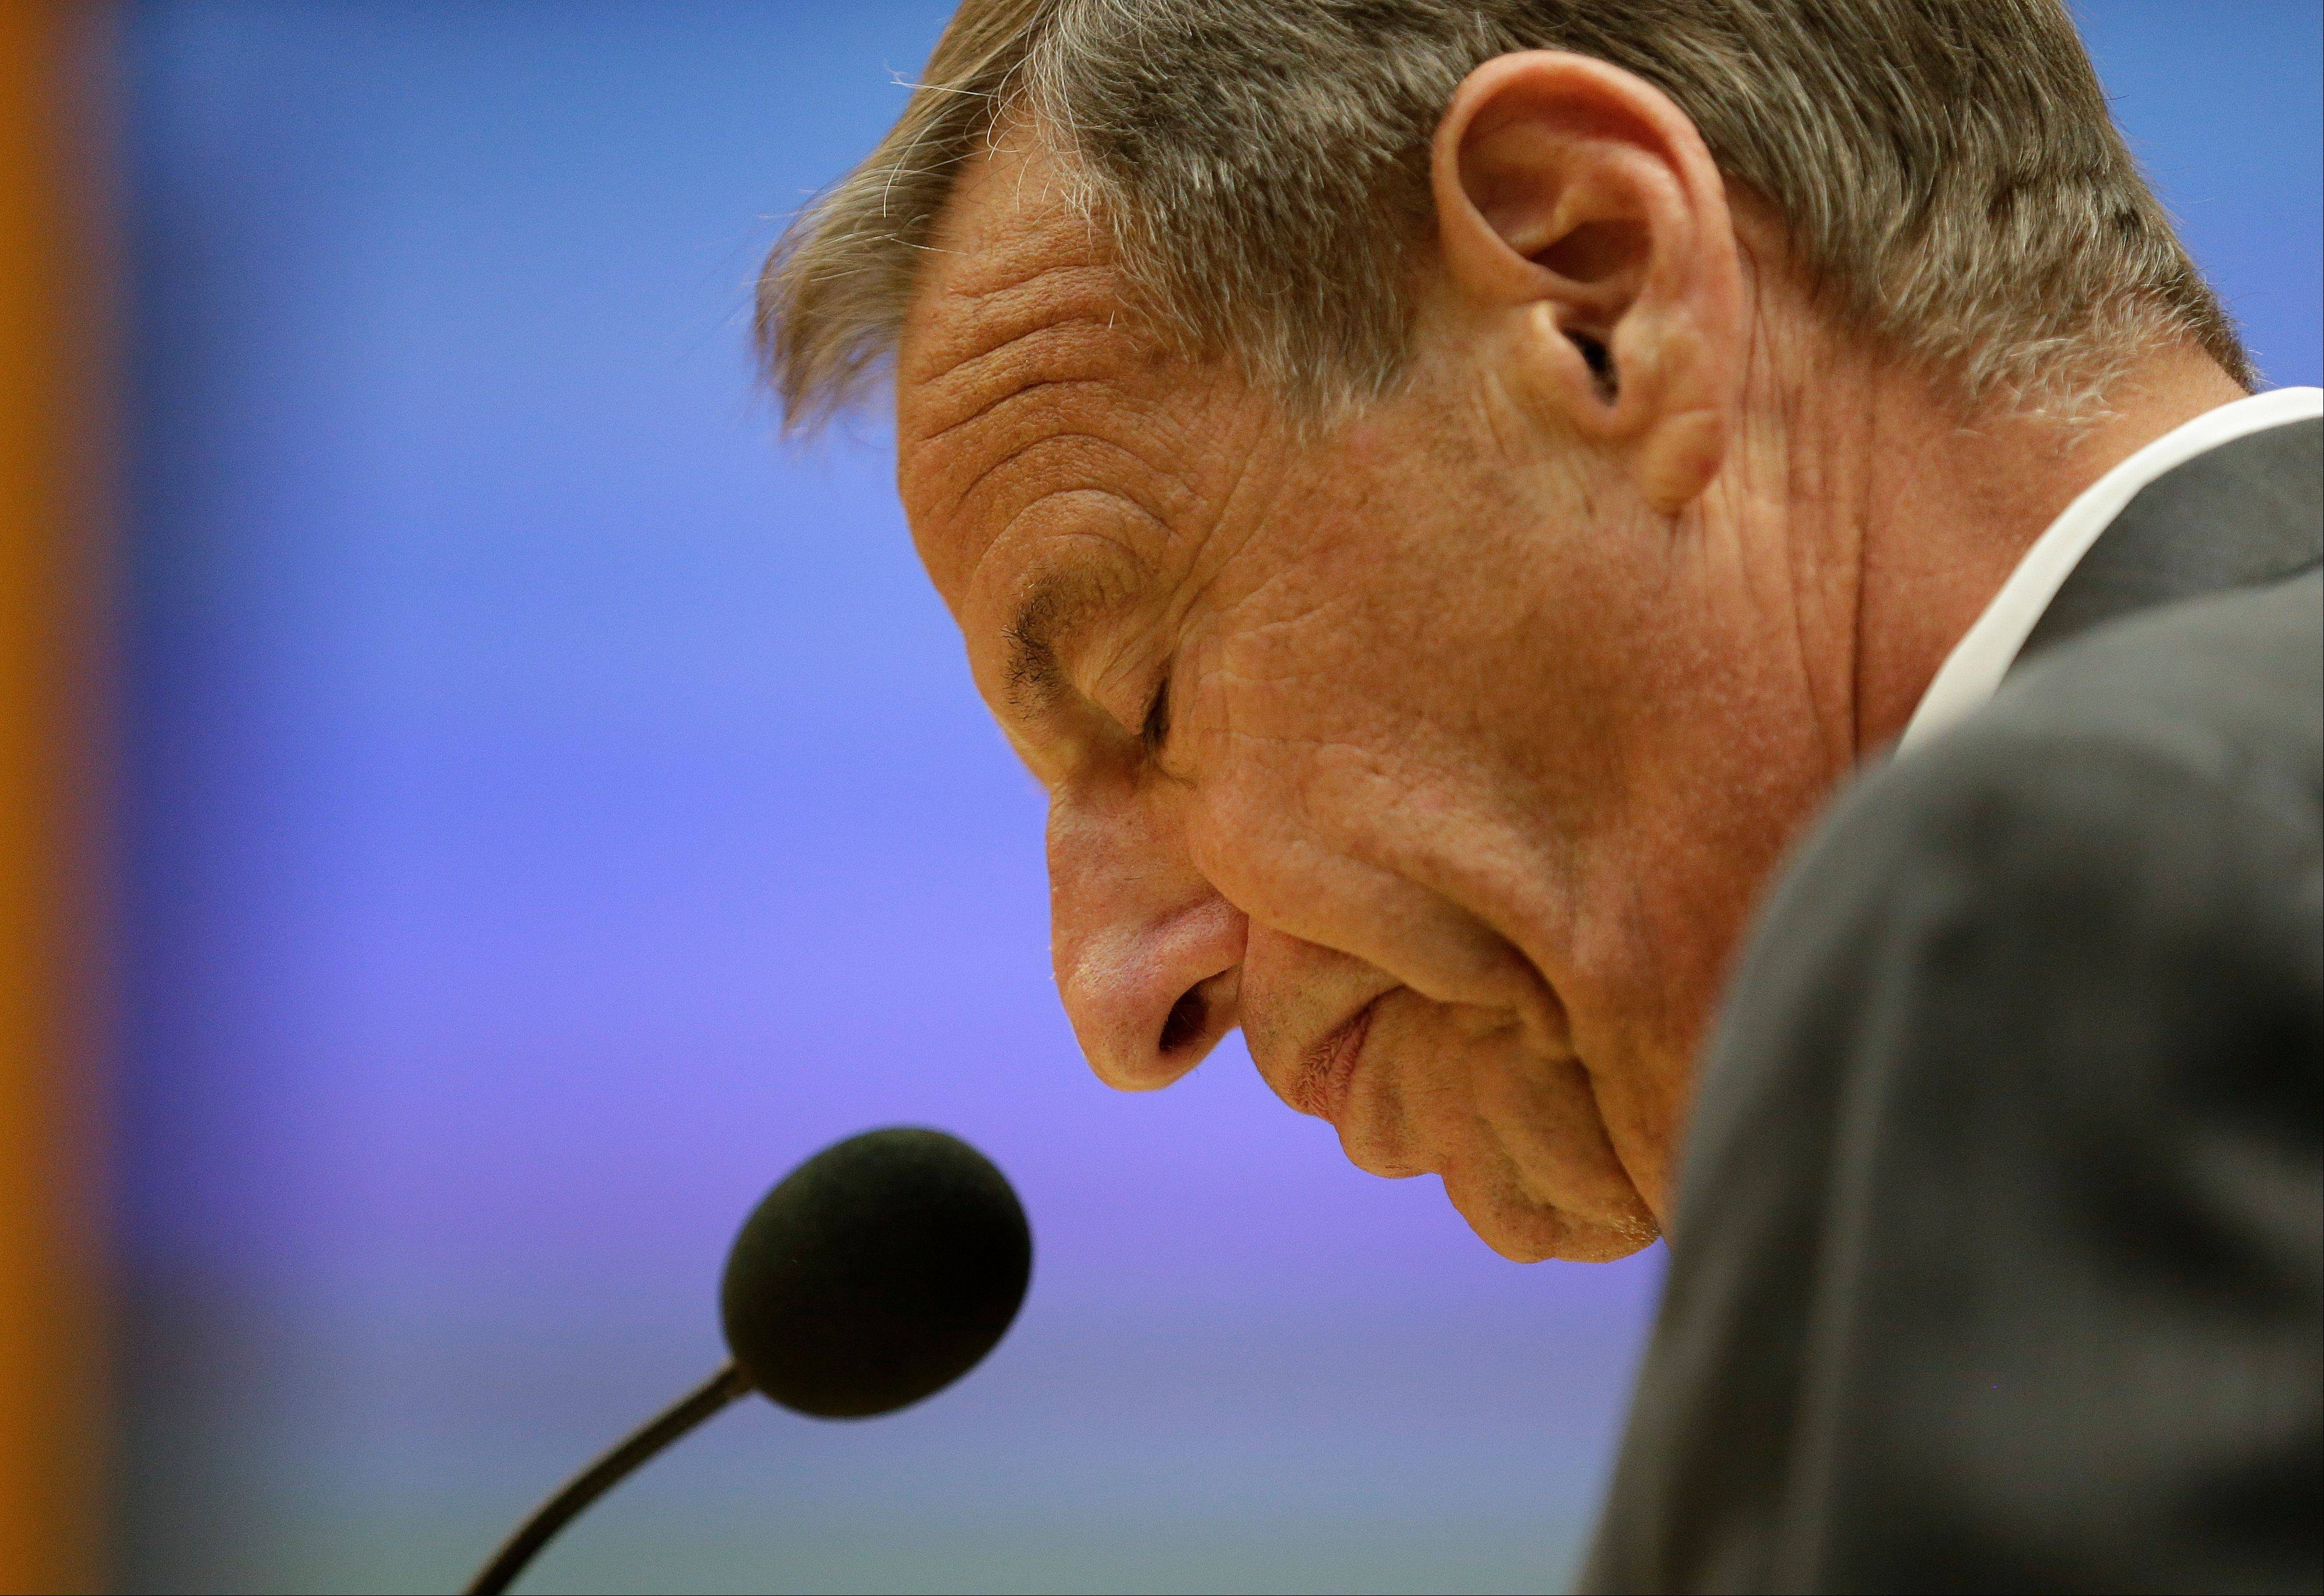 The California attorney general's office has charged Former San Diego Mayor Bob Filner with felony false imprisonment and two misdemeanor counts of battery. Filner, 71, resigned in late August, succumbing to intense pressure after at least 17 women brought lurid sexual harassment allegations against him.